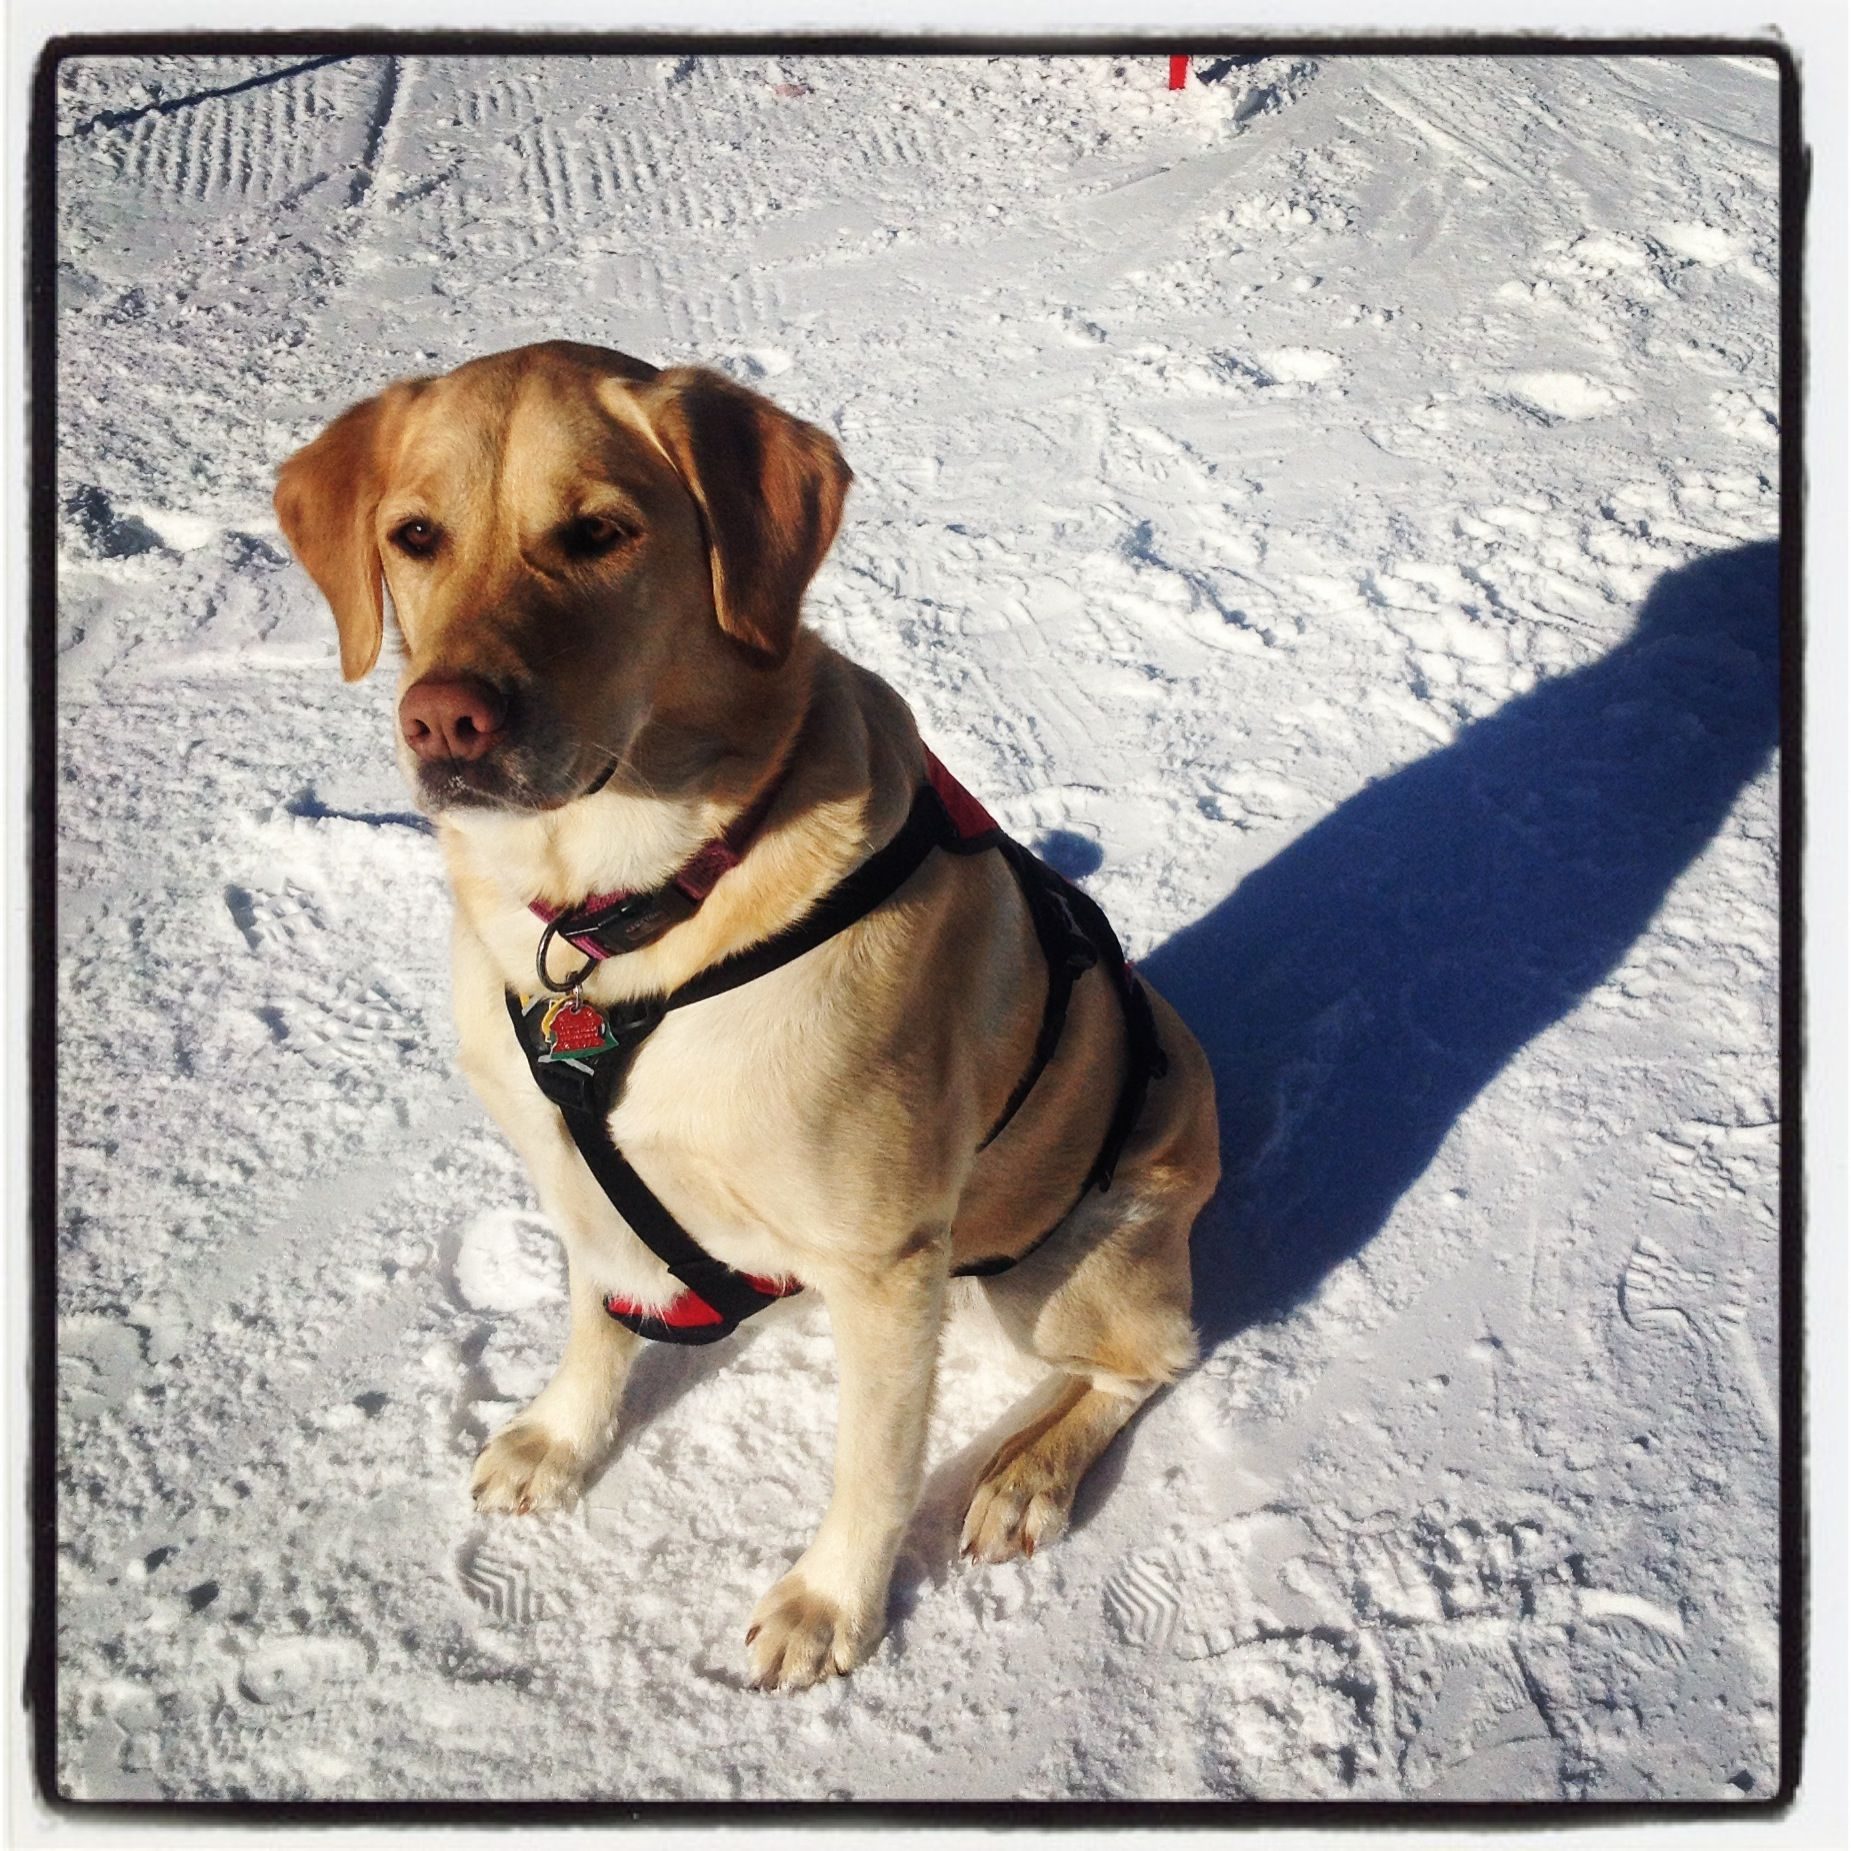 Meet Carmen... One of our amazing avalanche dogs #snowbasin.com #avalanchedogs